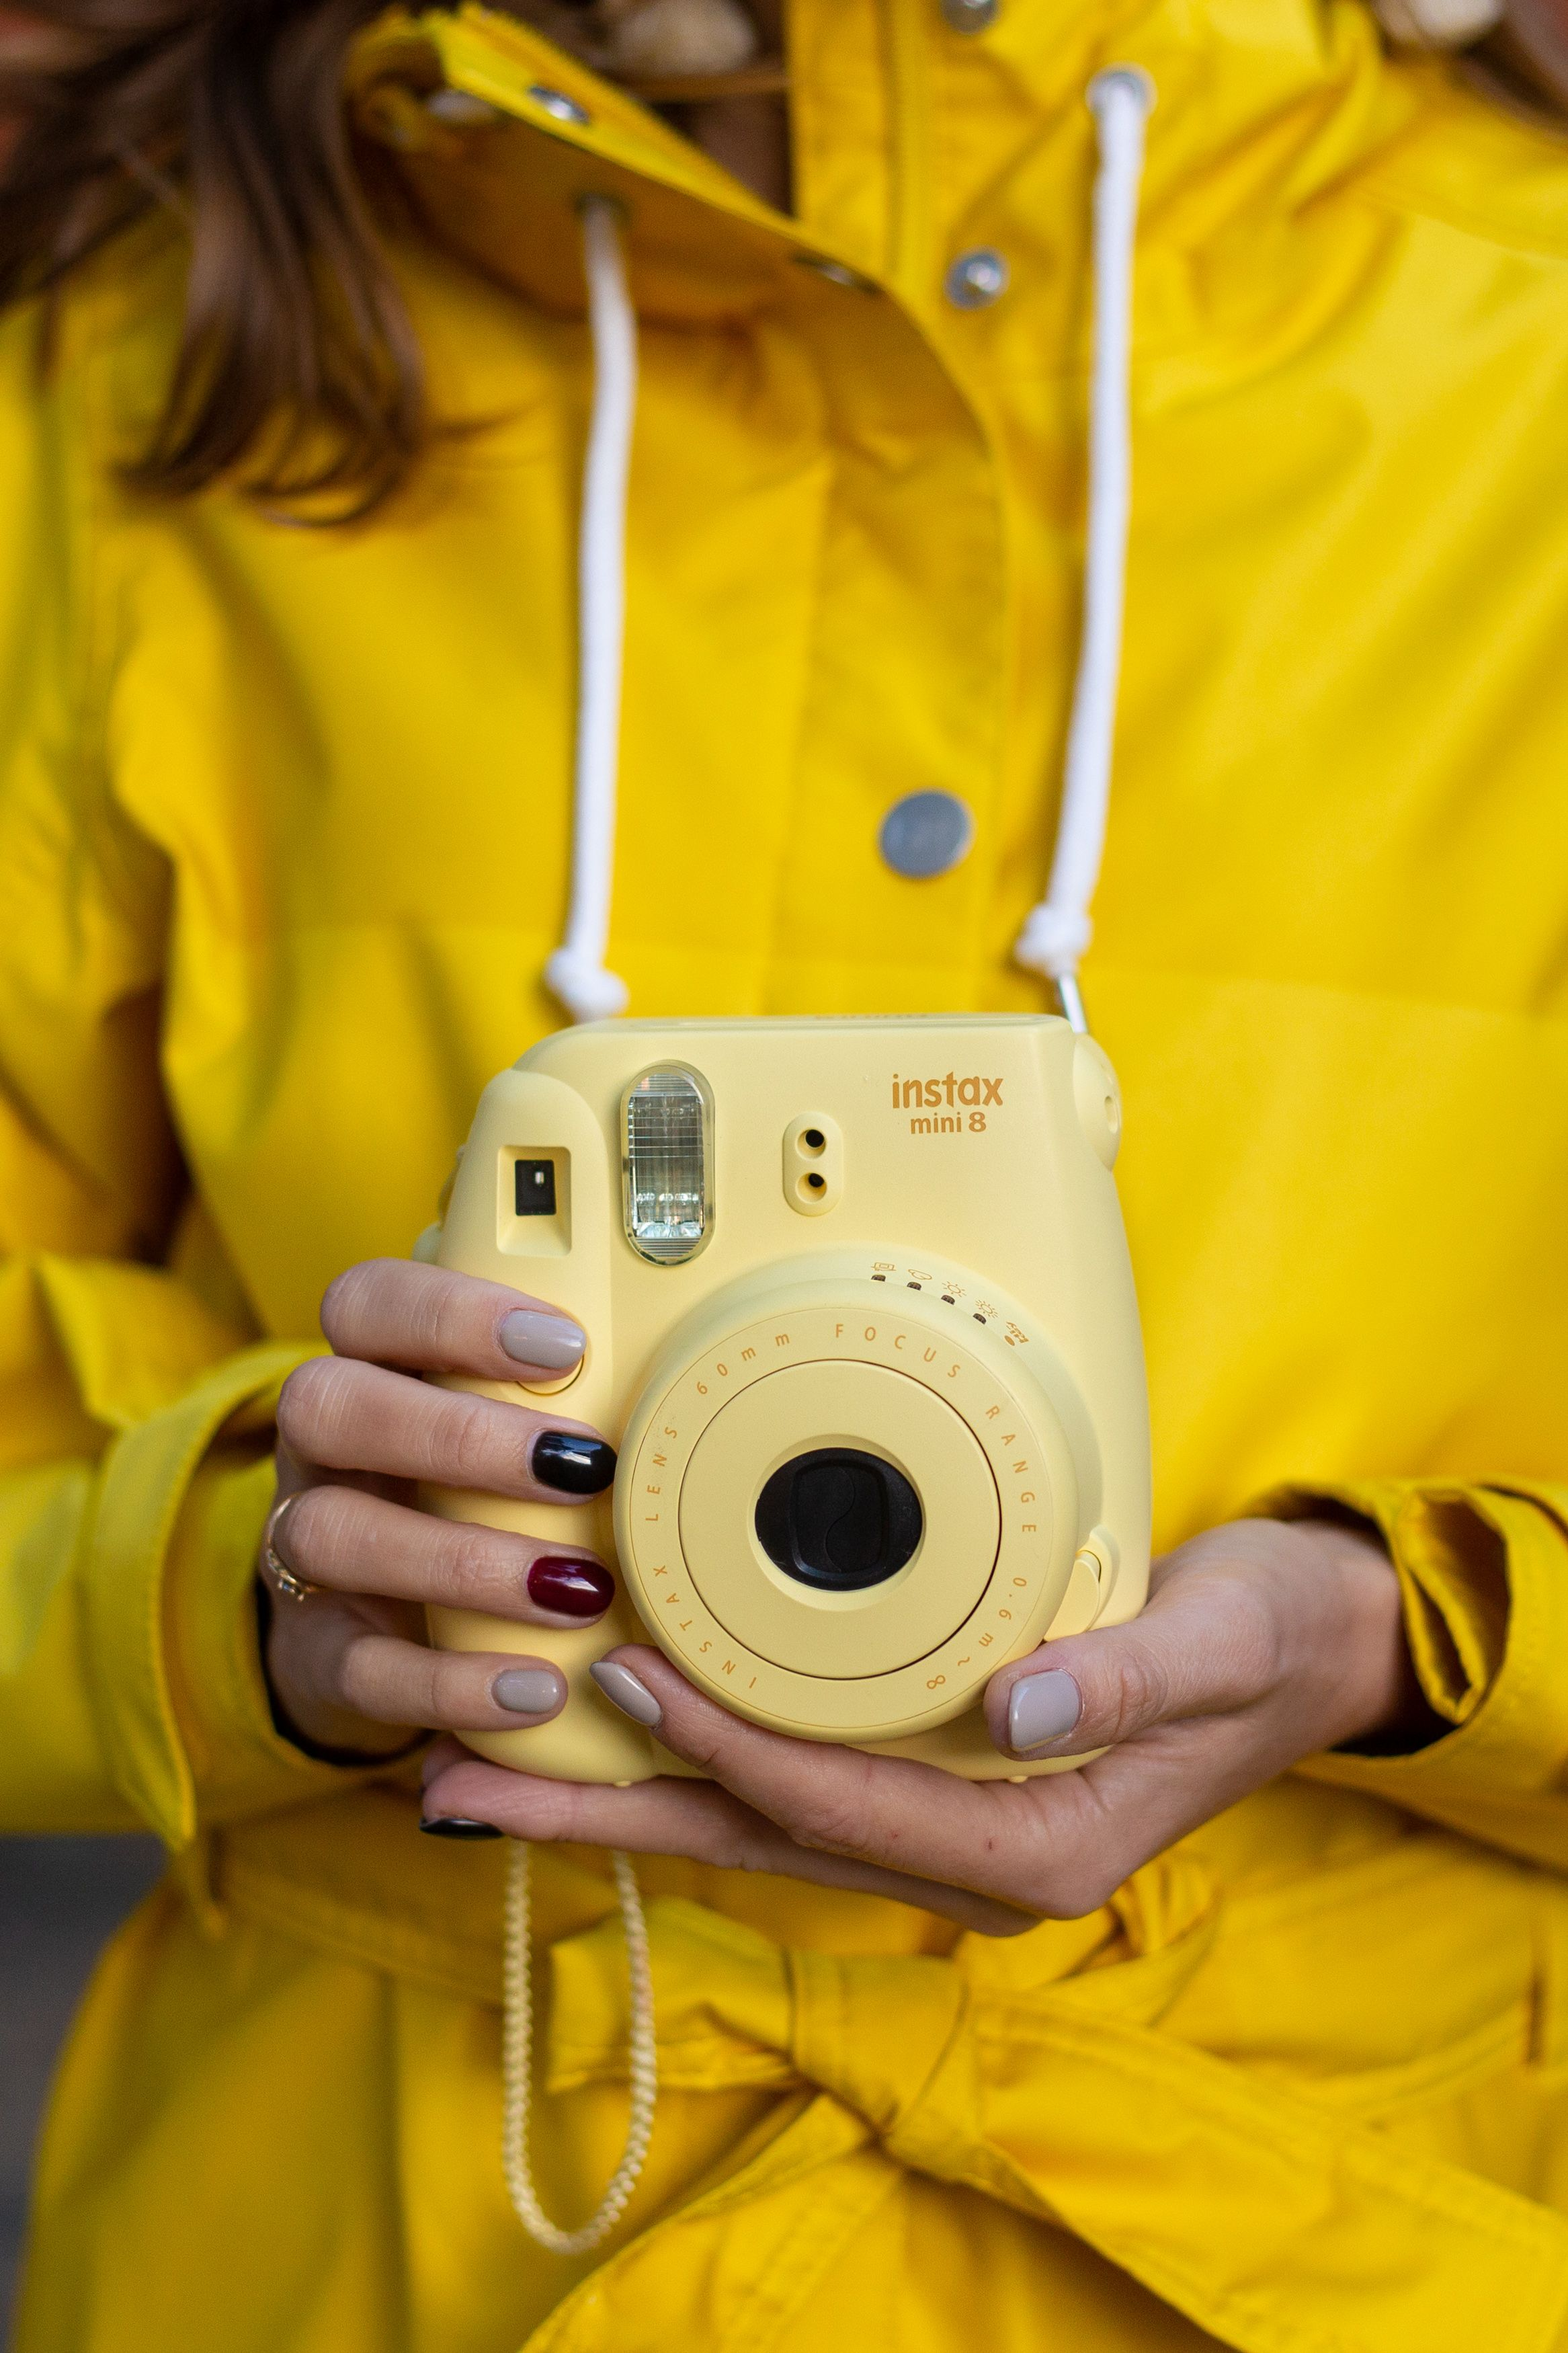 Yellow Instax Mini Camera For Snaping All Your Best Moments